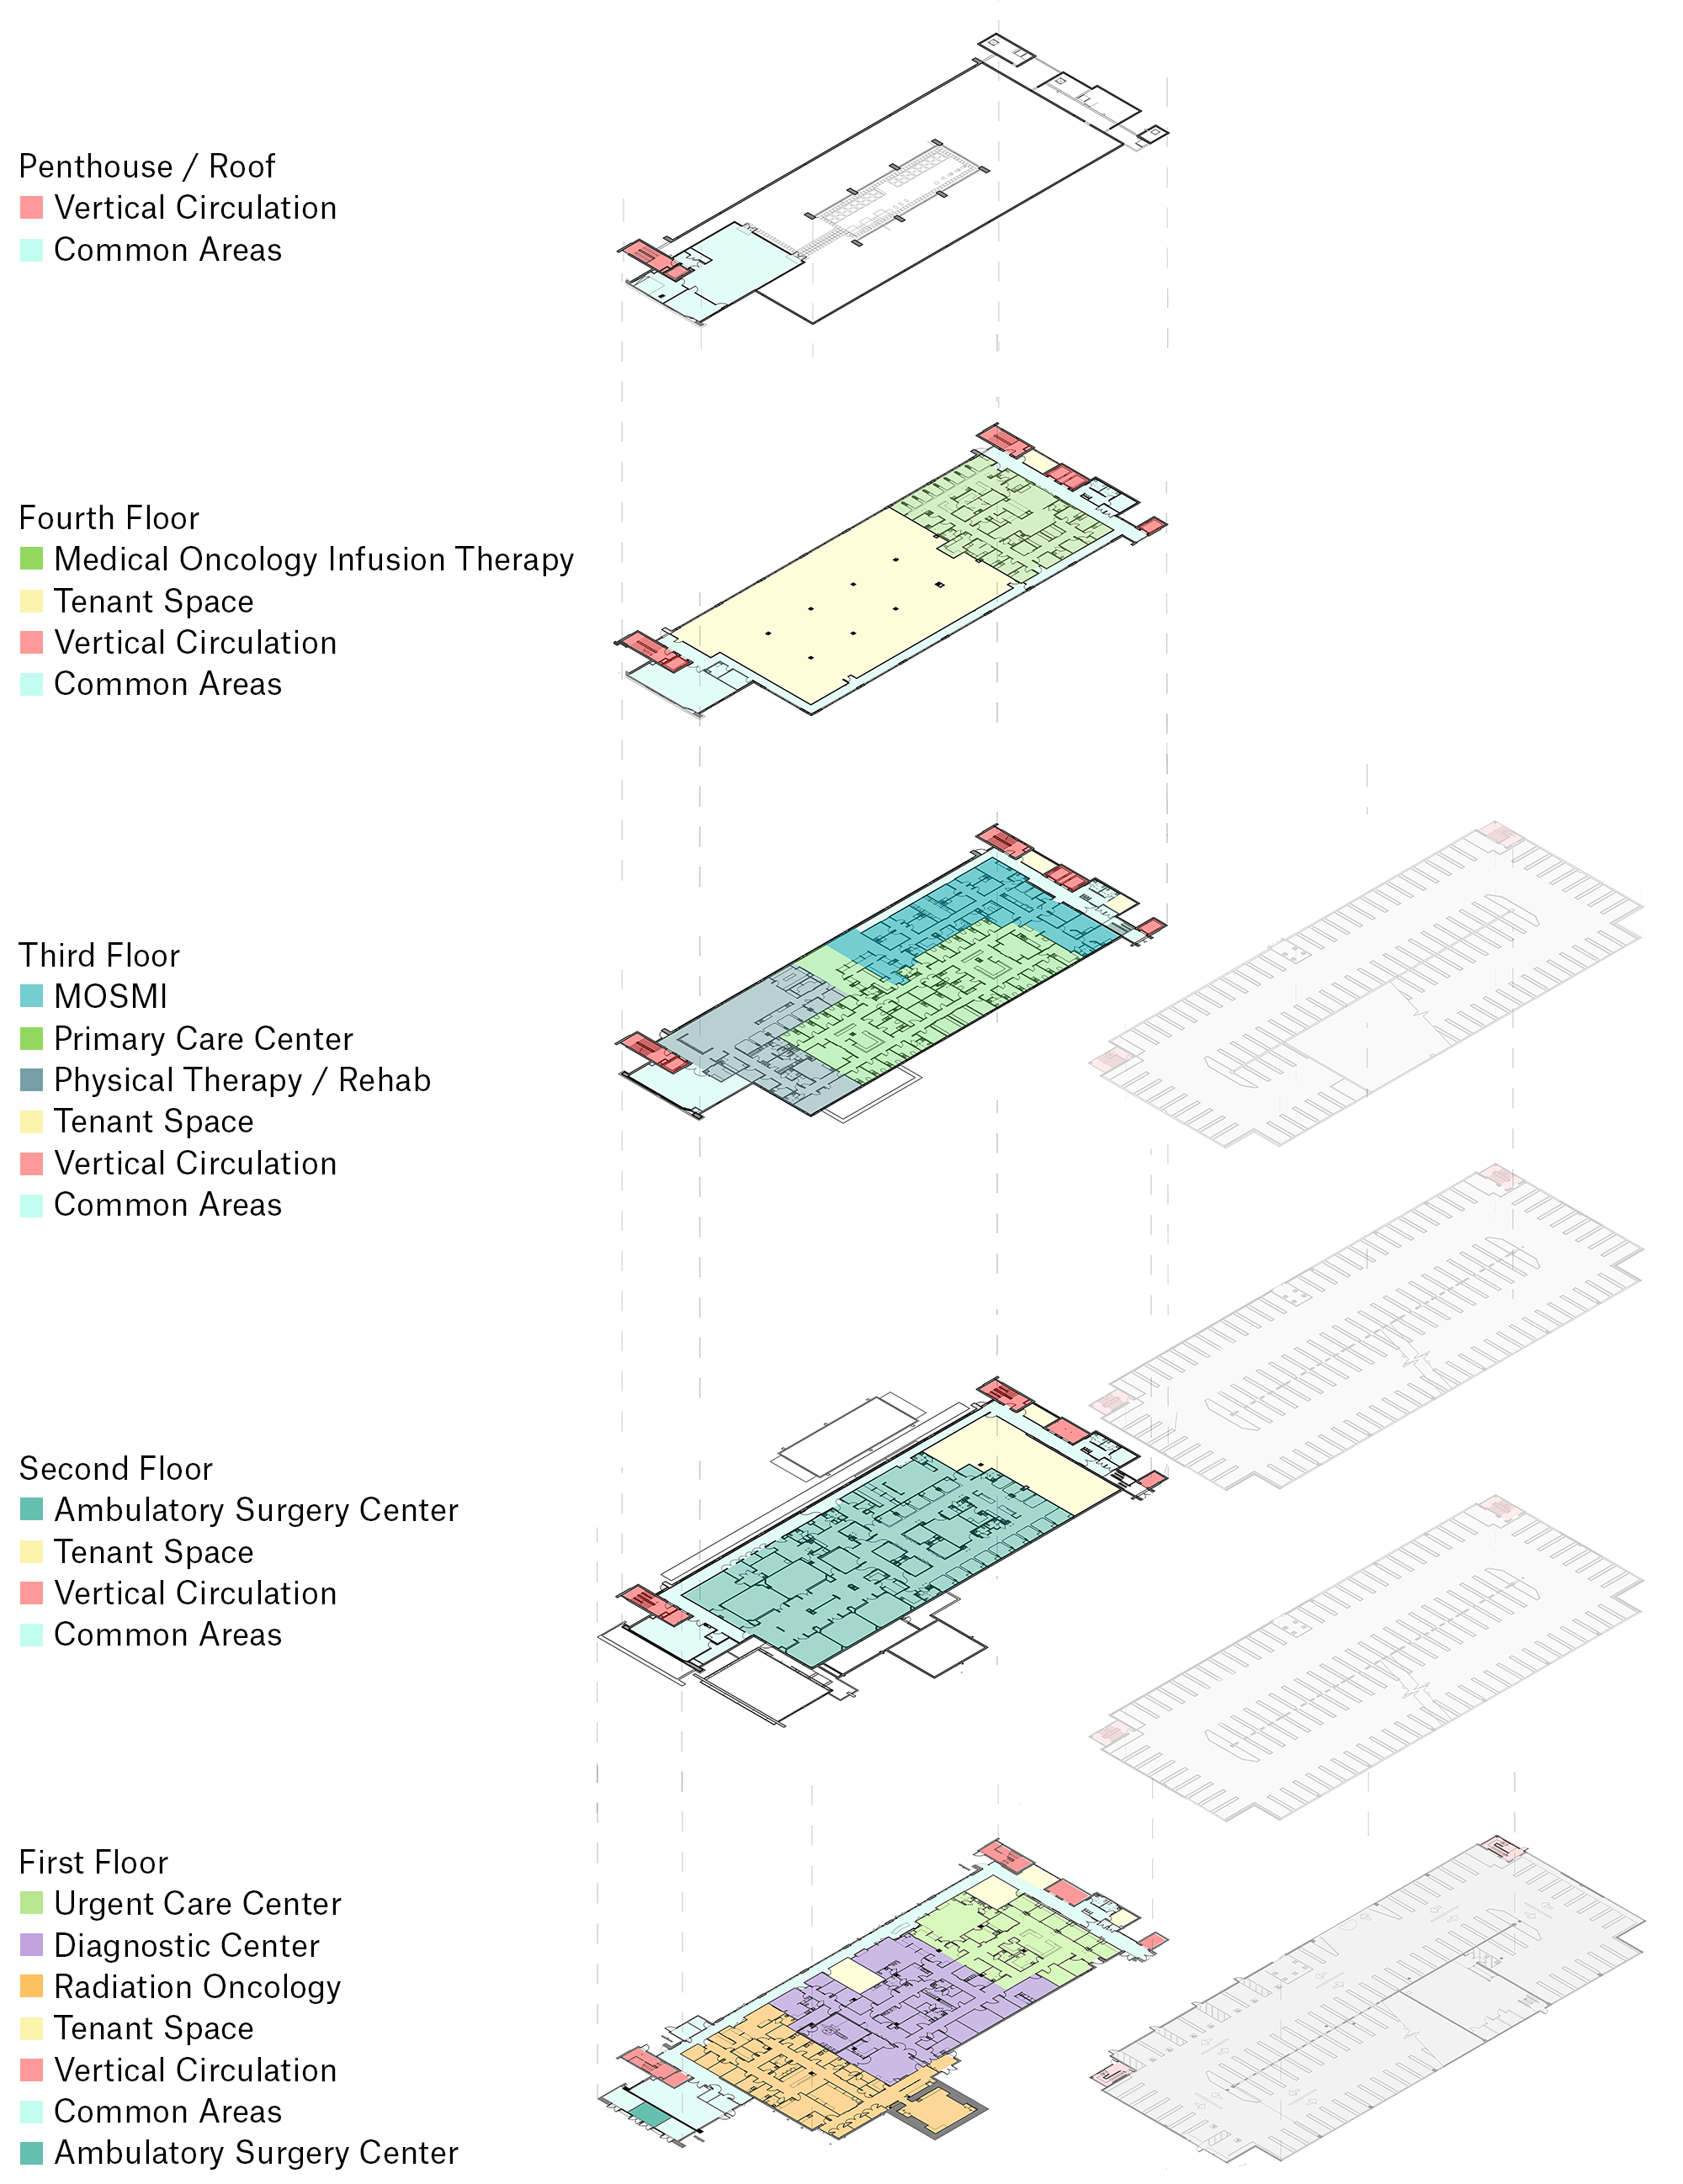 Creating a Flexible Floor Plan for Future Growth